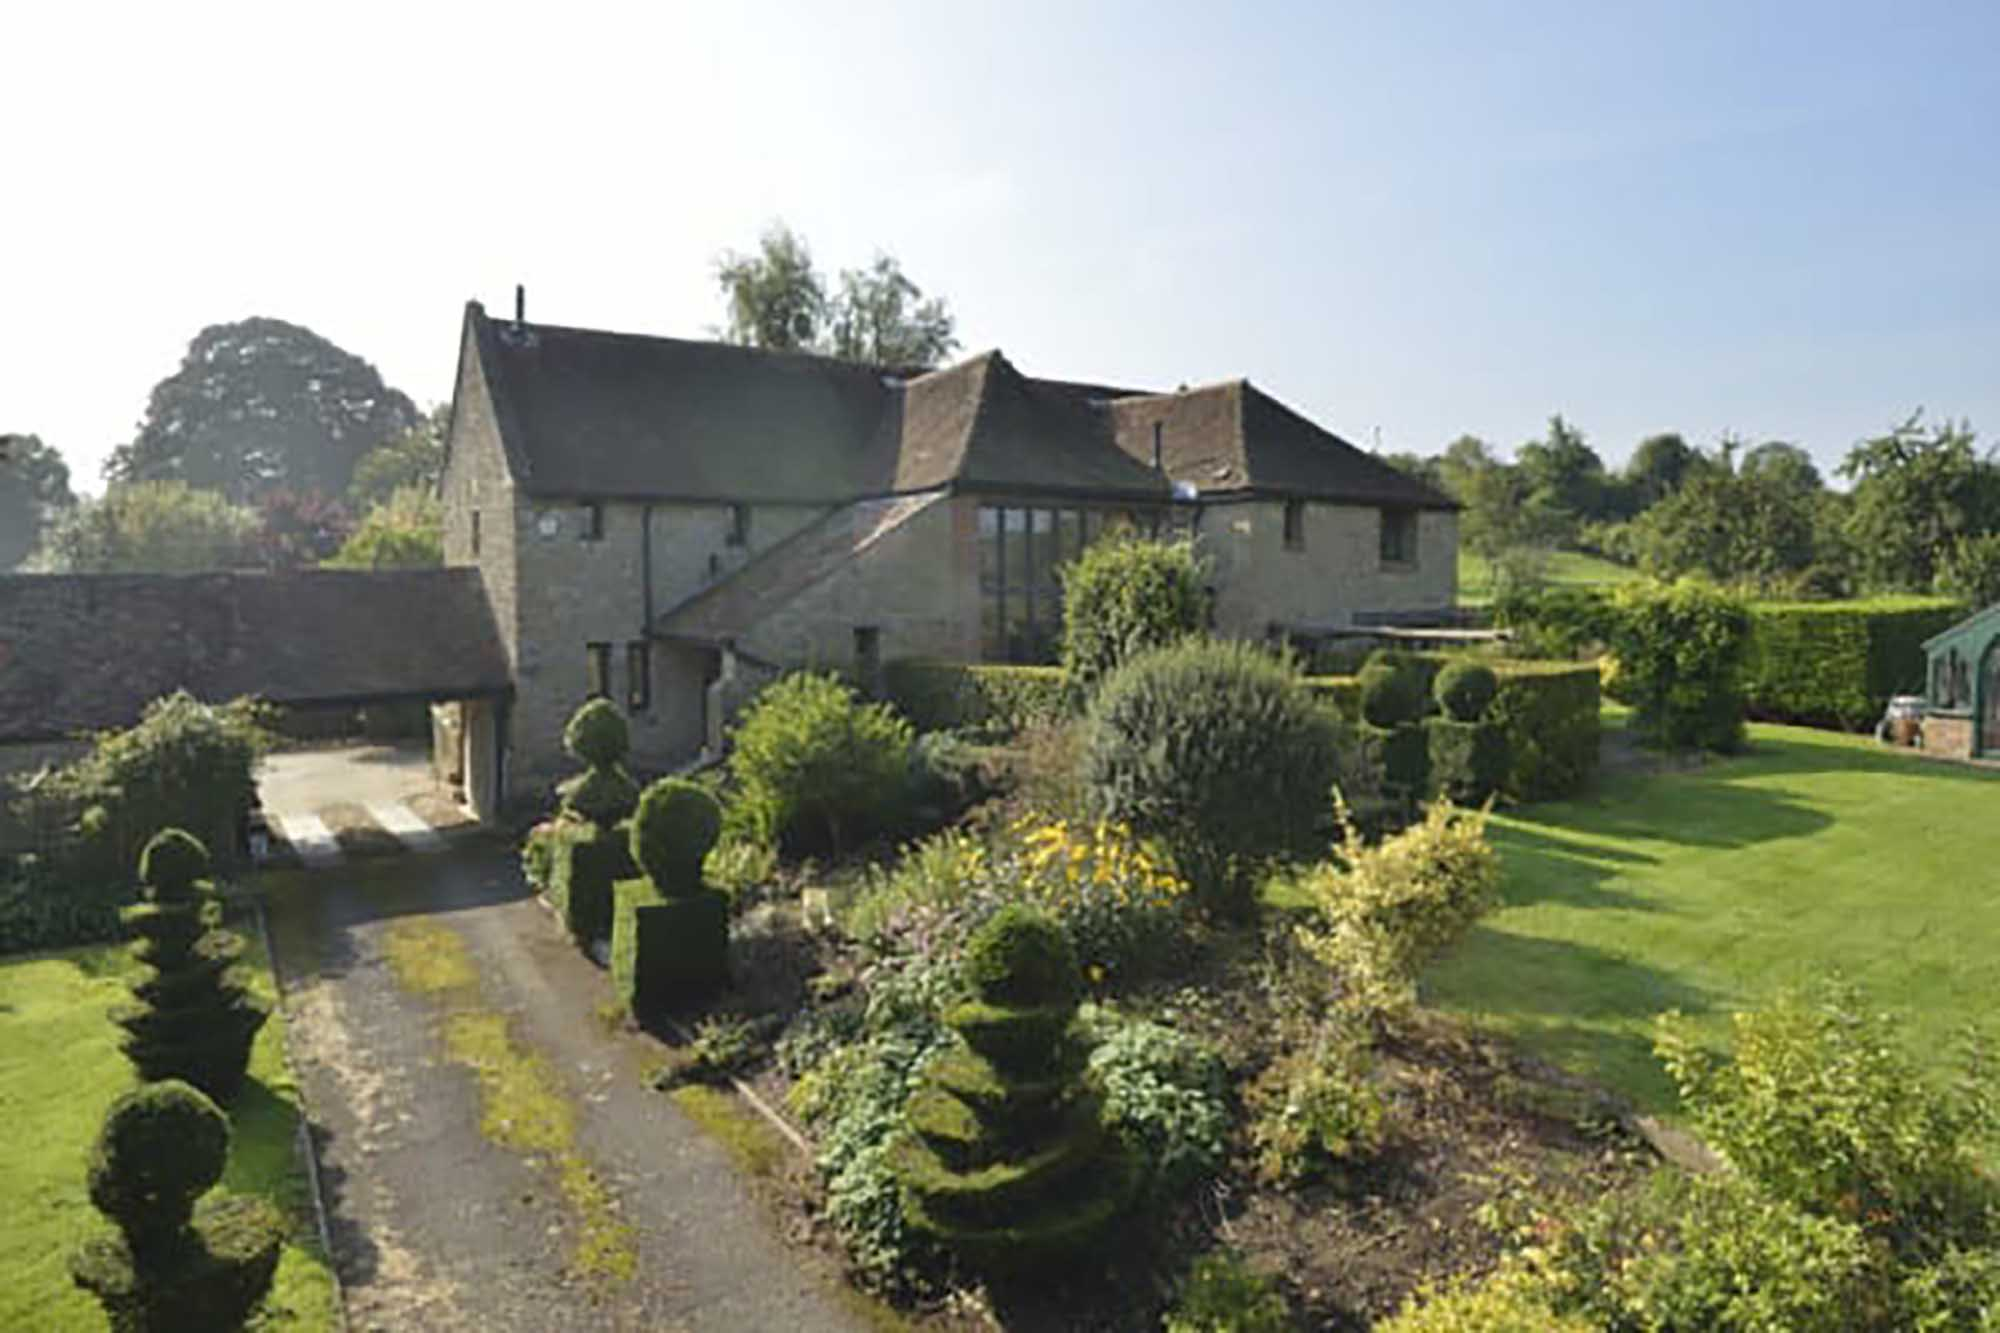 A spacious light filled property in a peaceful location on the edge of a village near Bruton.